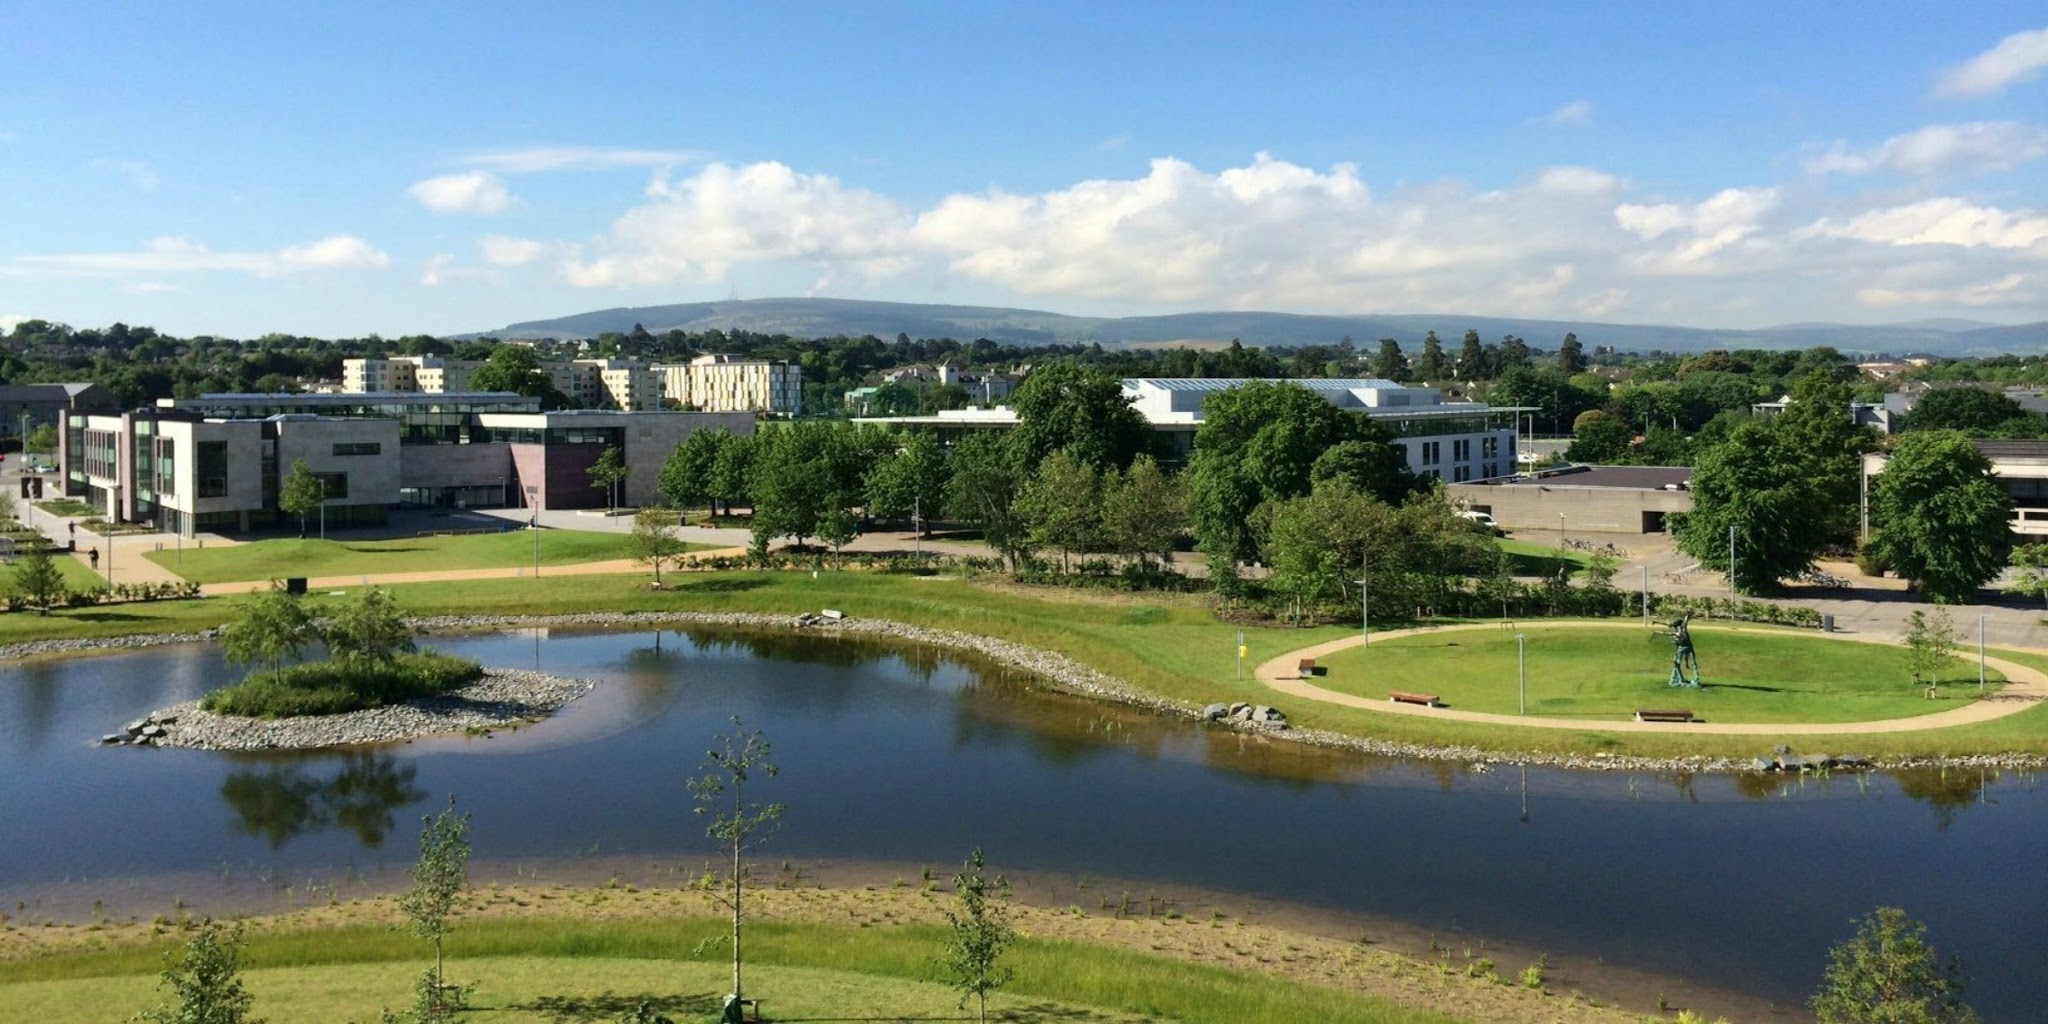 View towards the Dublin mountains from the UCD main engineering building